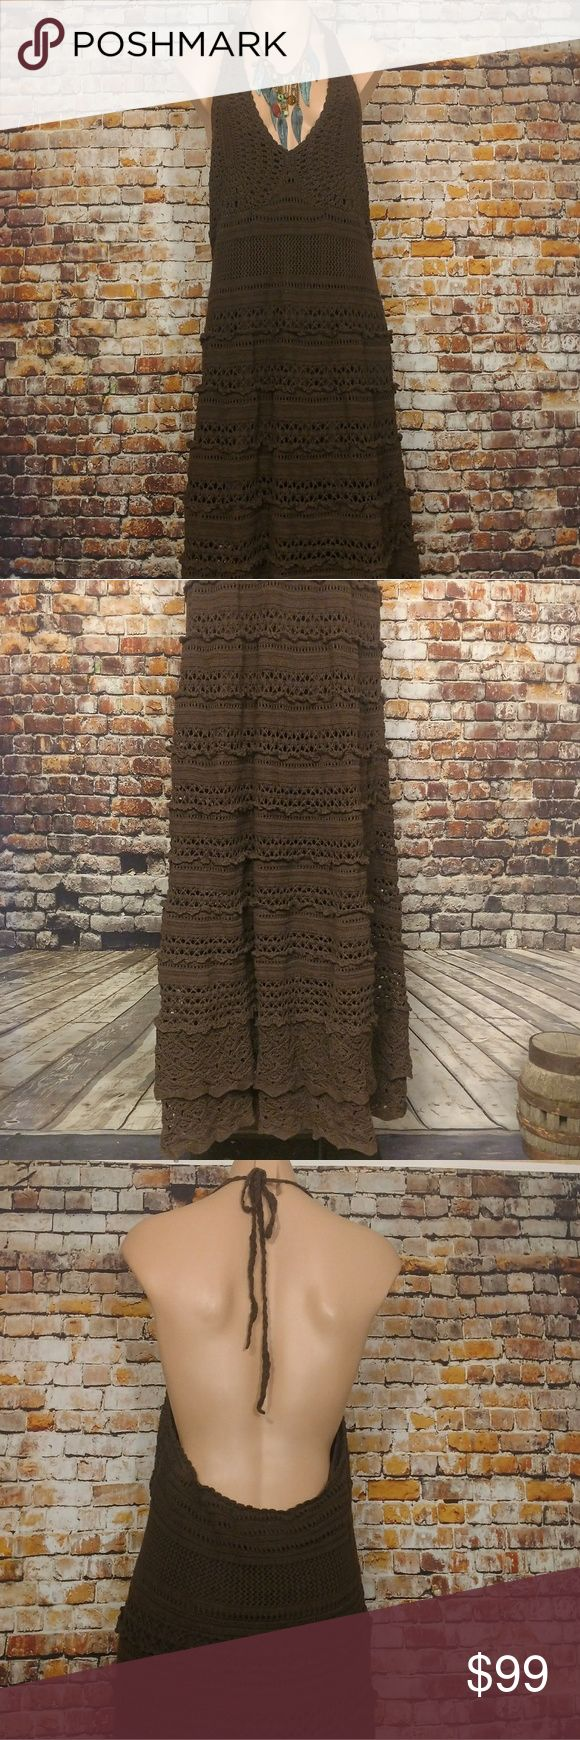 "Boho Crochet Halter Maxi Dress XL Fantastic Bohemian, Gypsy, Festival halter maxi dress. Ties behind neck, open back, partially lined. Dark brown. Size XL.  36"" chest unstretched, 61"" long from top of halter where ties start, 32"" long lining. Unique, One of a kind, Spell Dresses Maxi"